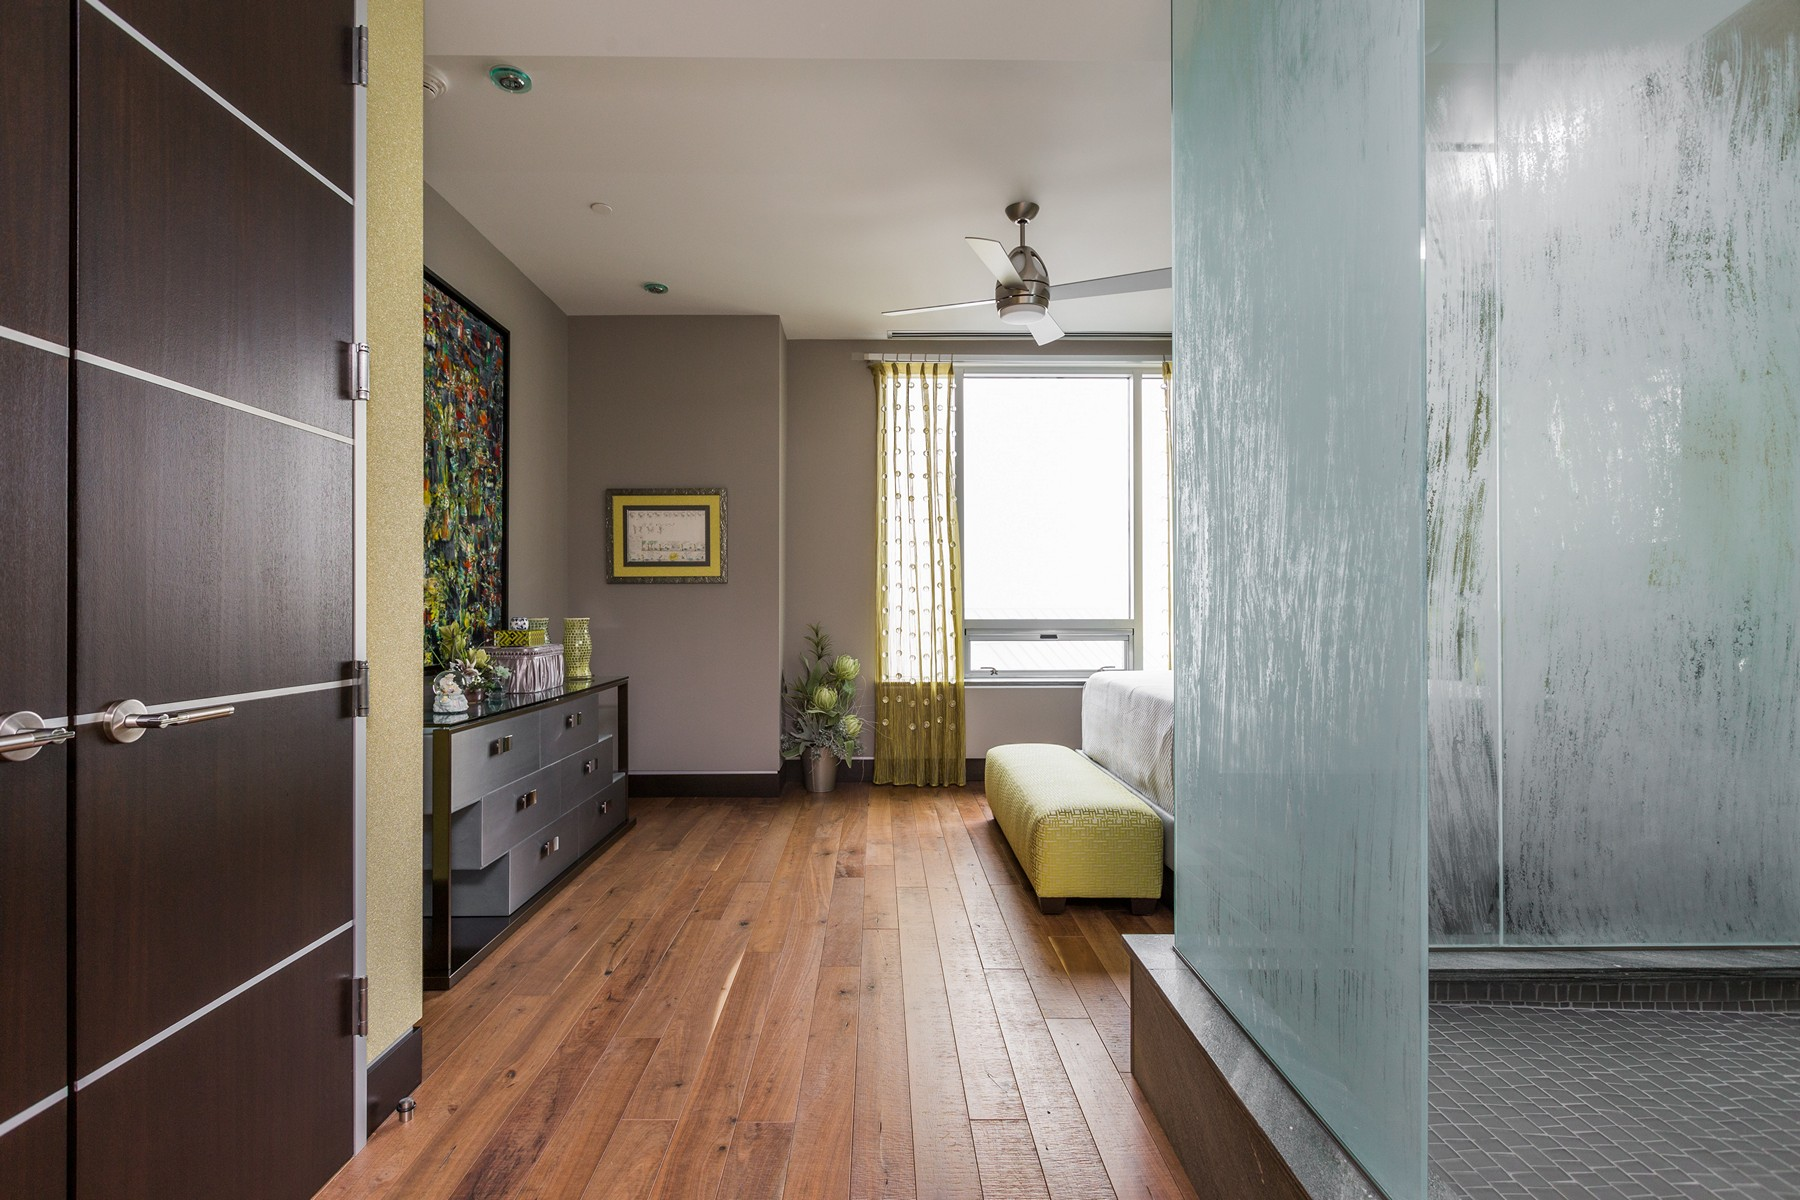 Additional photo for property listing at A Limited Edition 1 N. Illinois Street Unit #2002 Indianapolis, Indiana 46204 United States